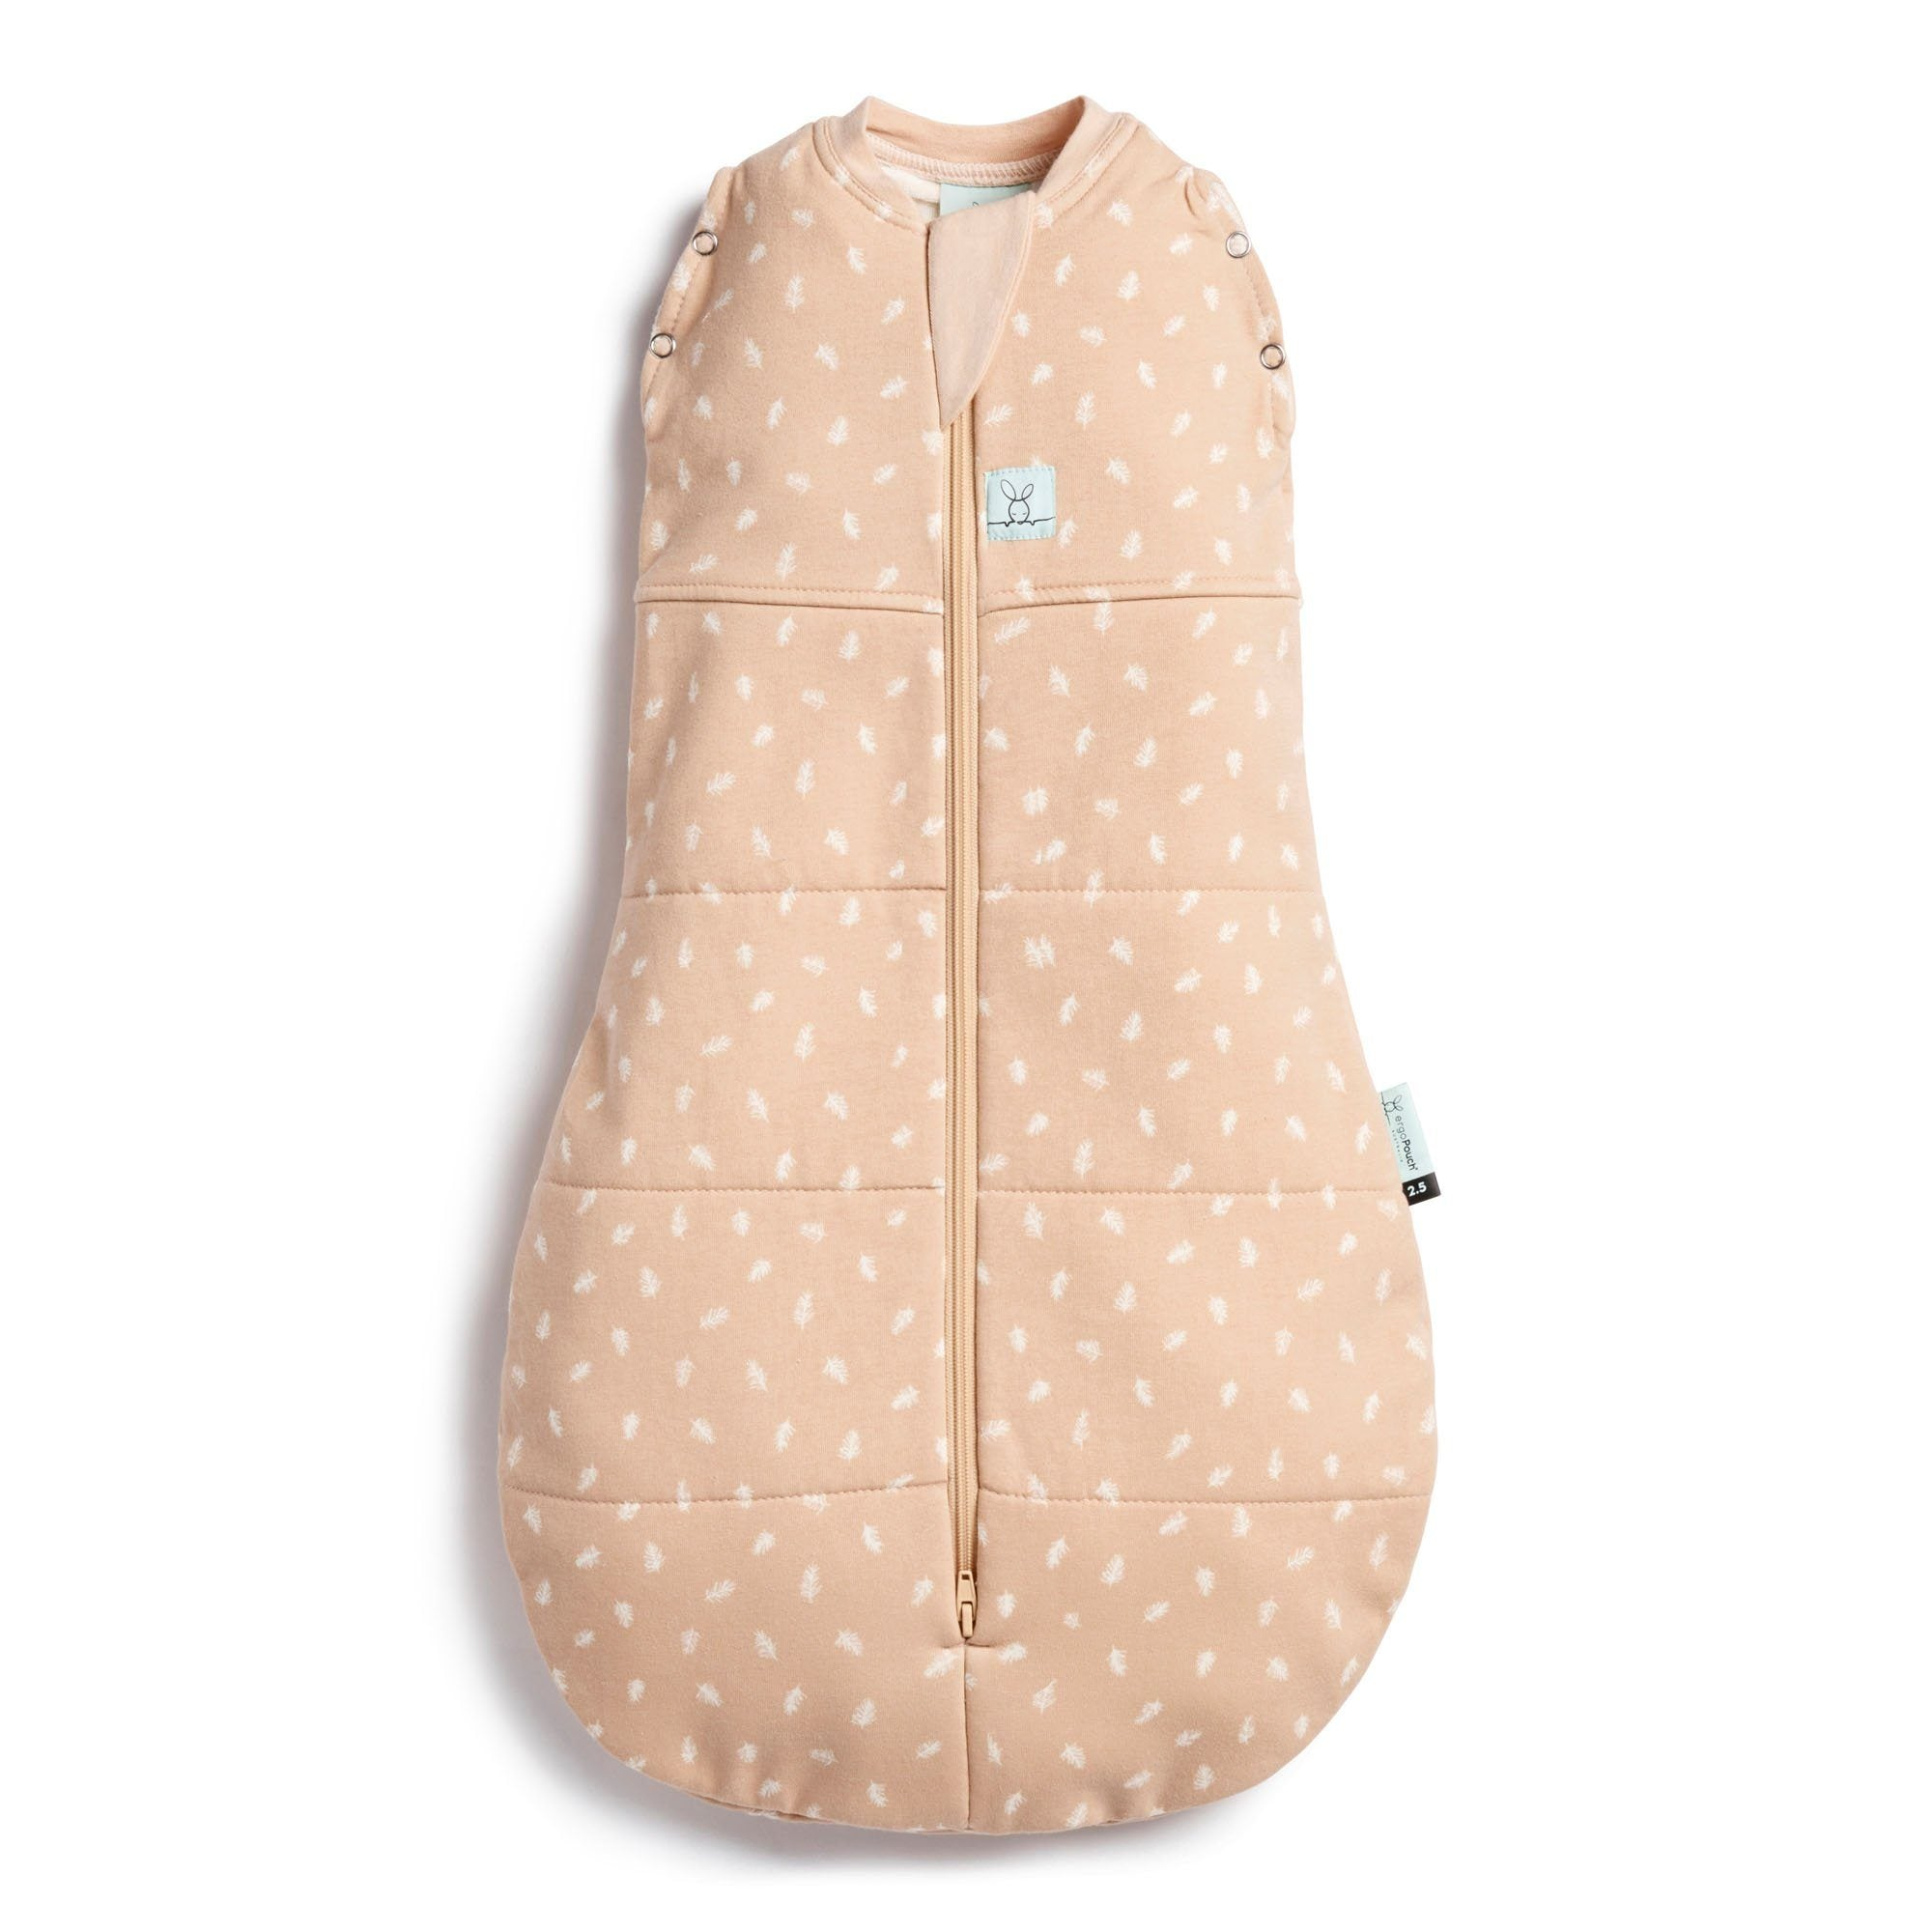 Cocoon Swaddle Bag 2.5 tog (Golden)